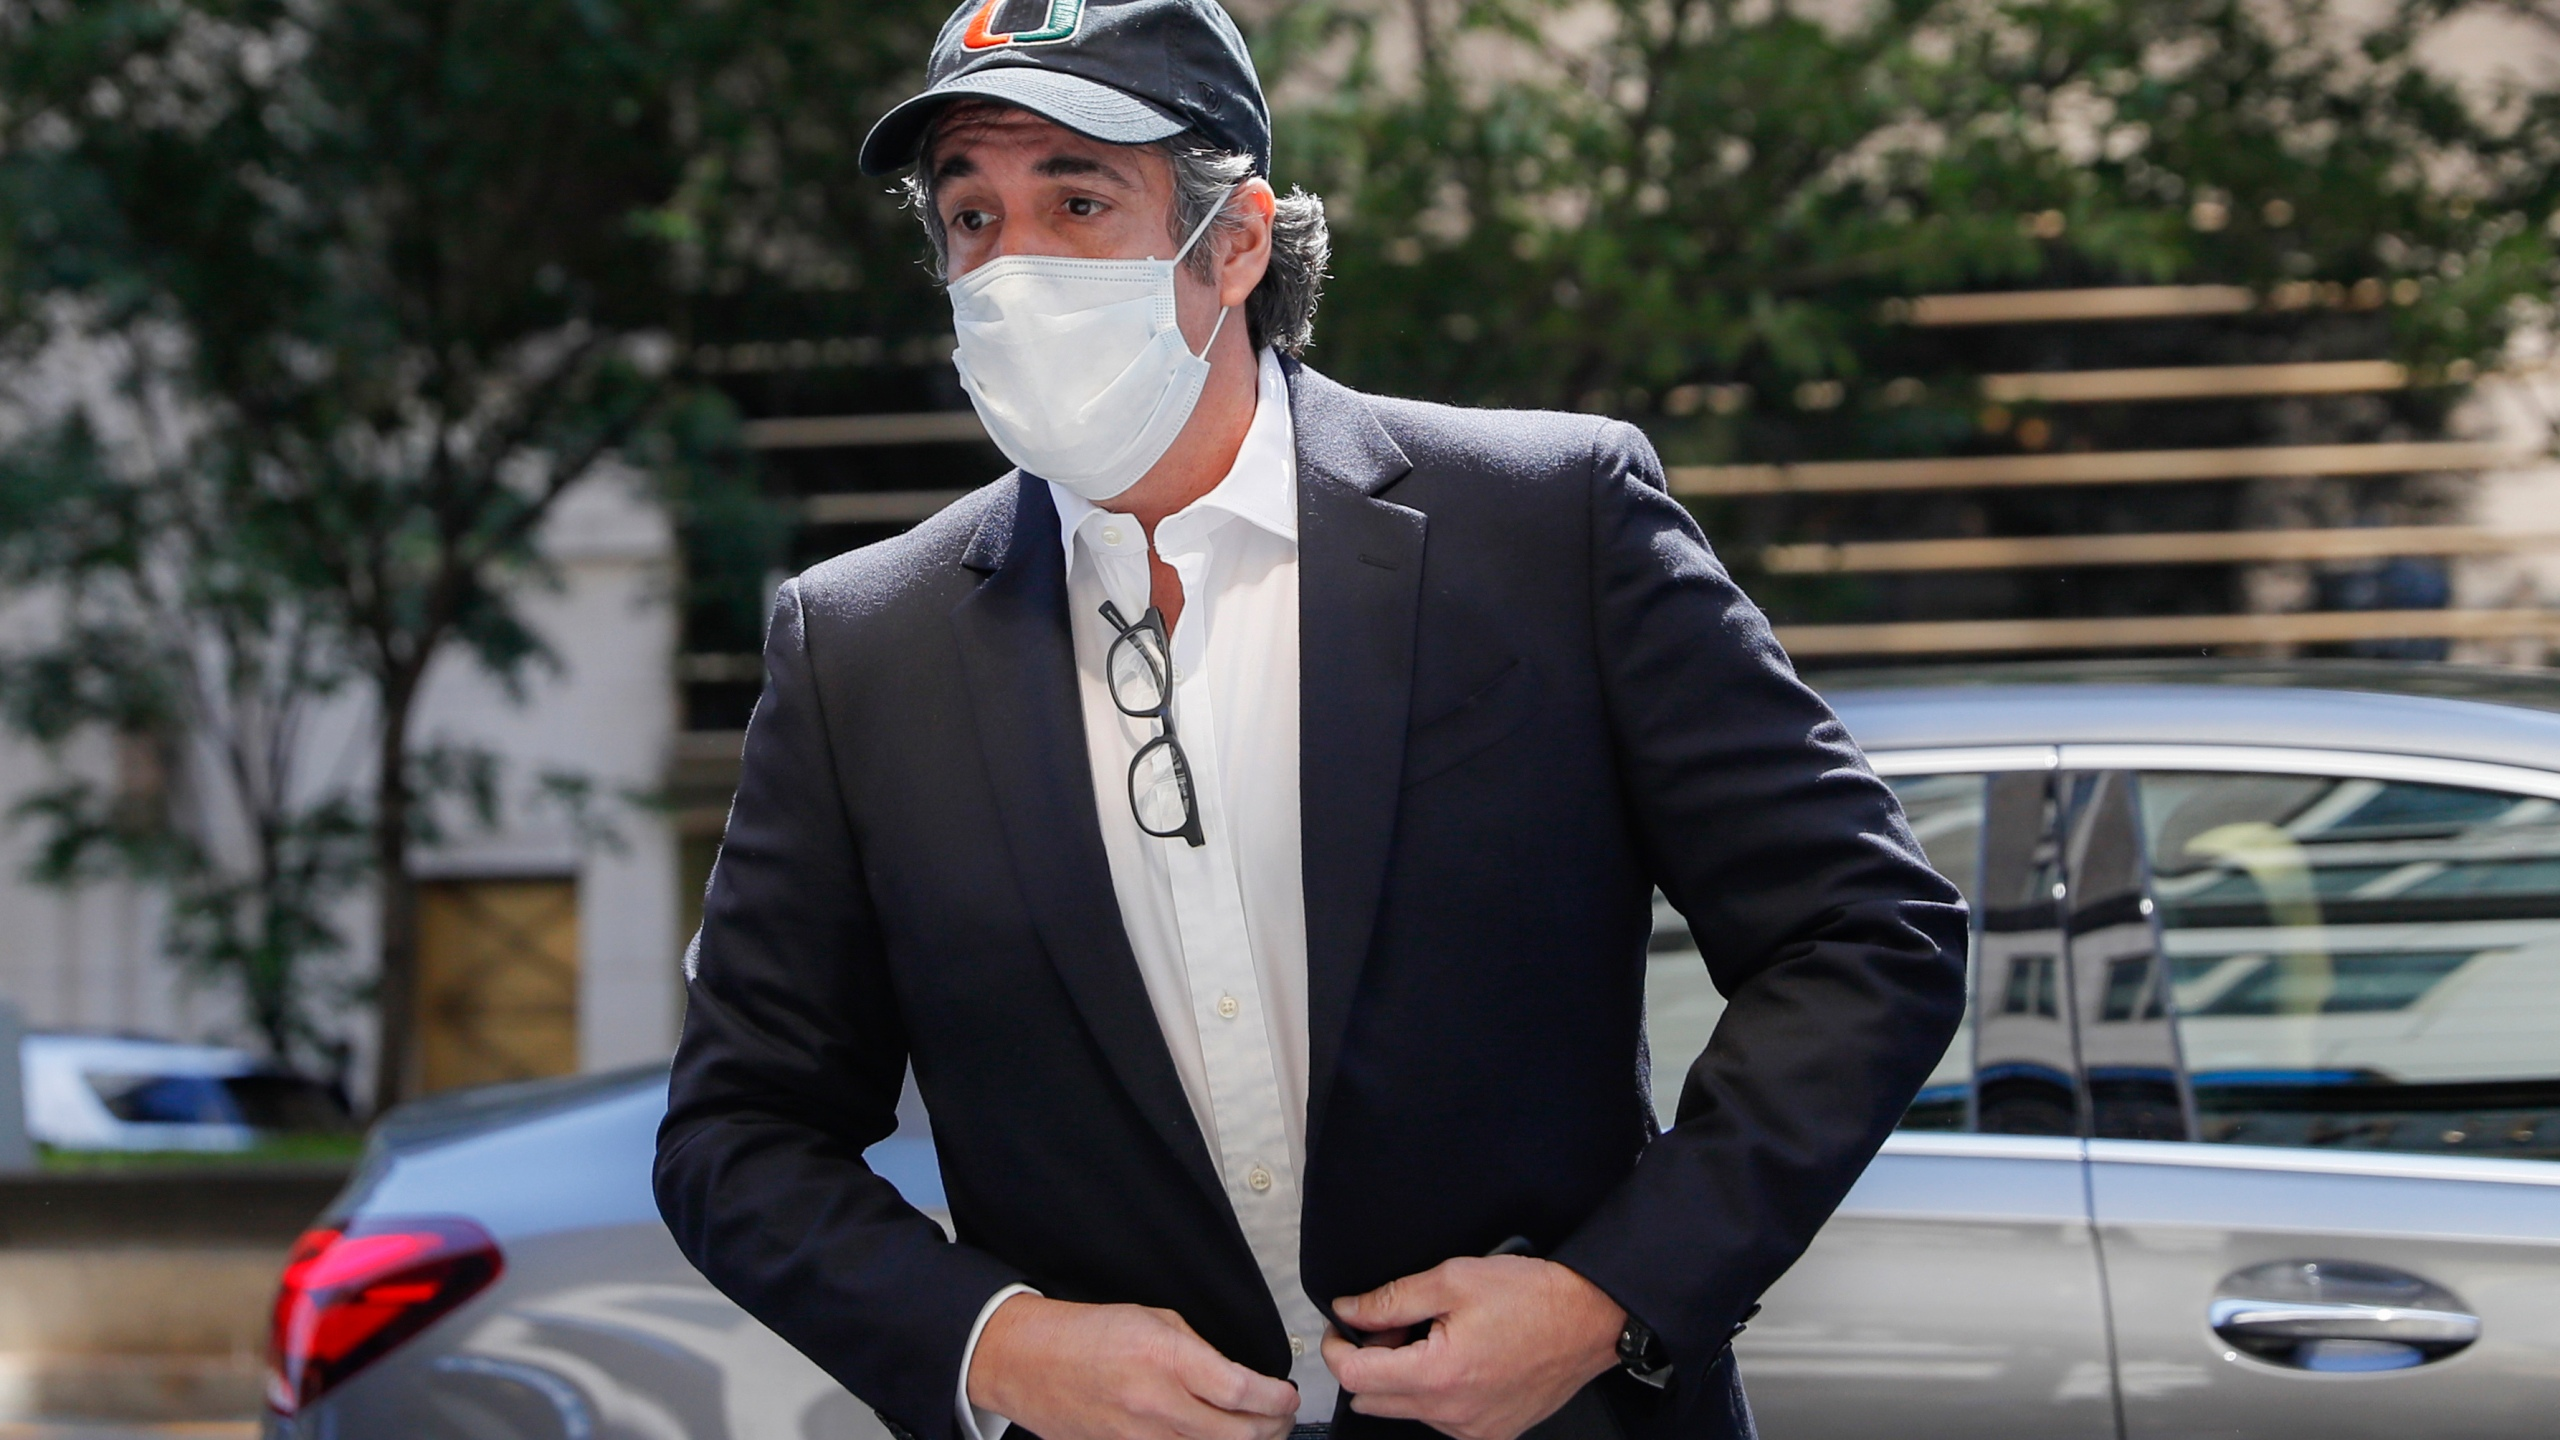 In this May 21, 2020 file photo, Michael Cohen arrives at his Manhattan apartment in New York after being furloughed from prison because of concerns over the coronavirus. (John Minchillo/Associated Press)